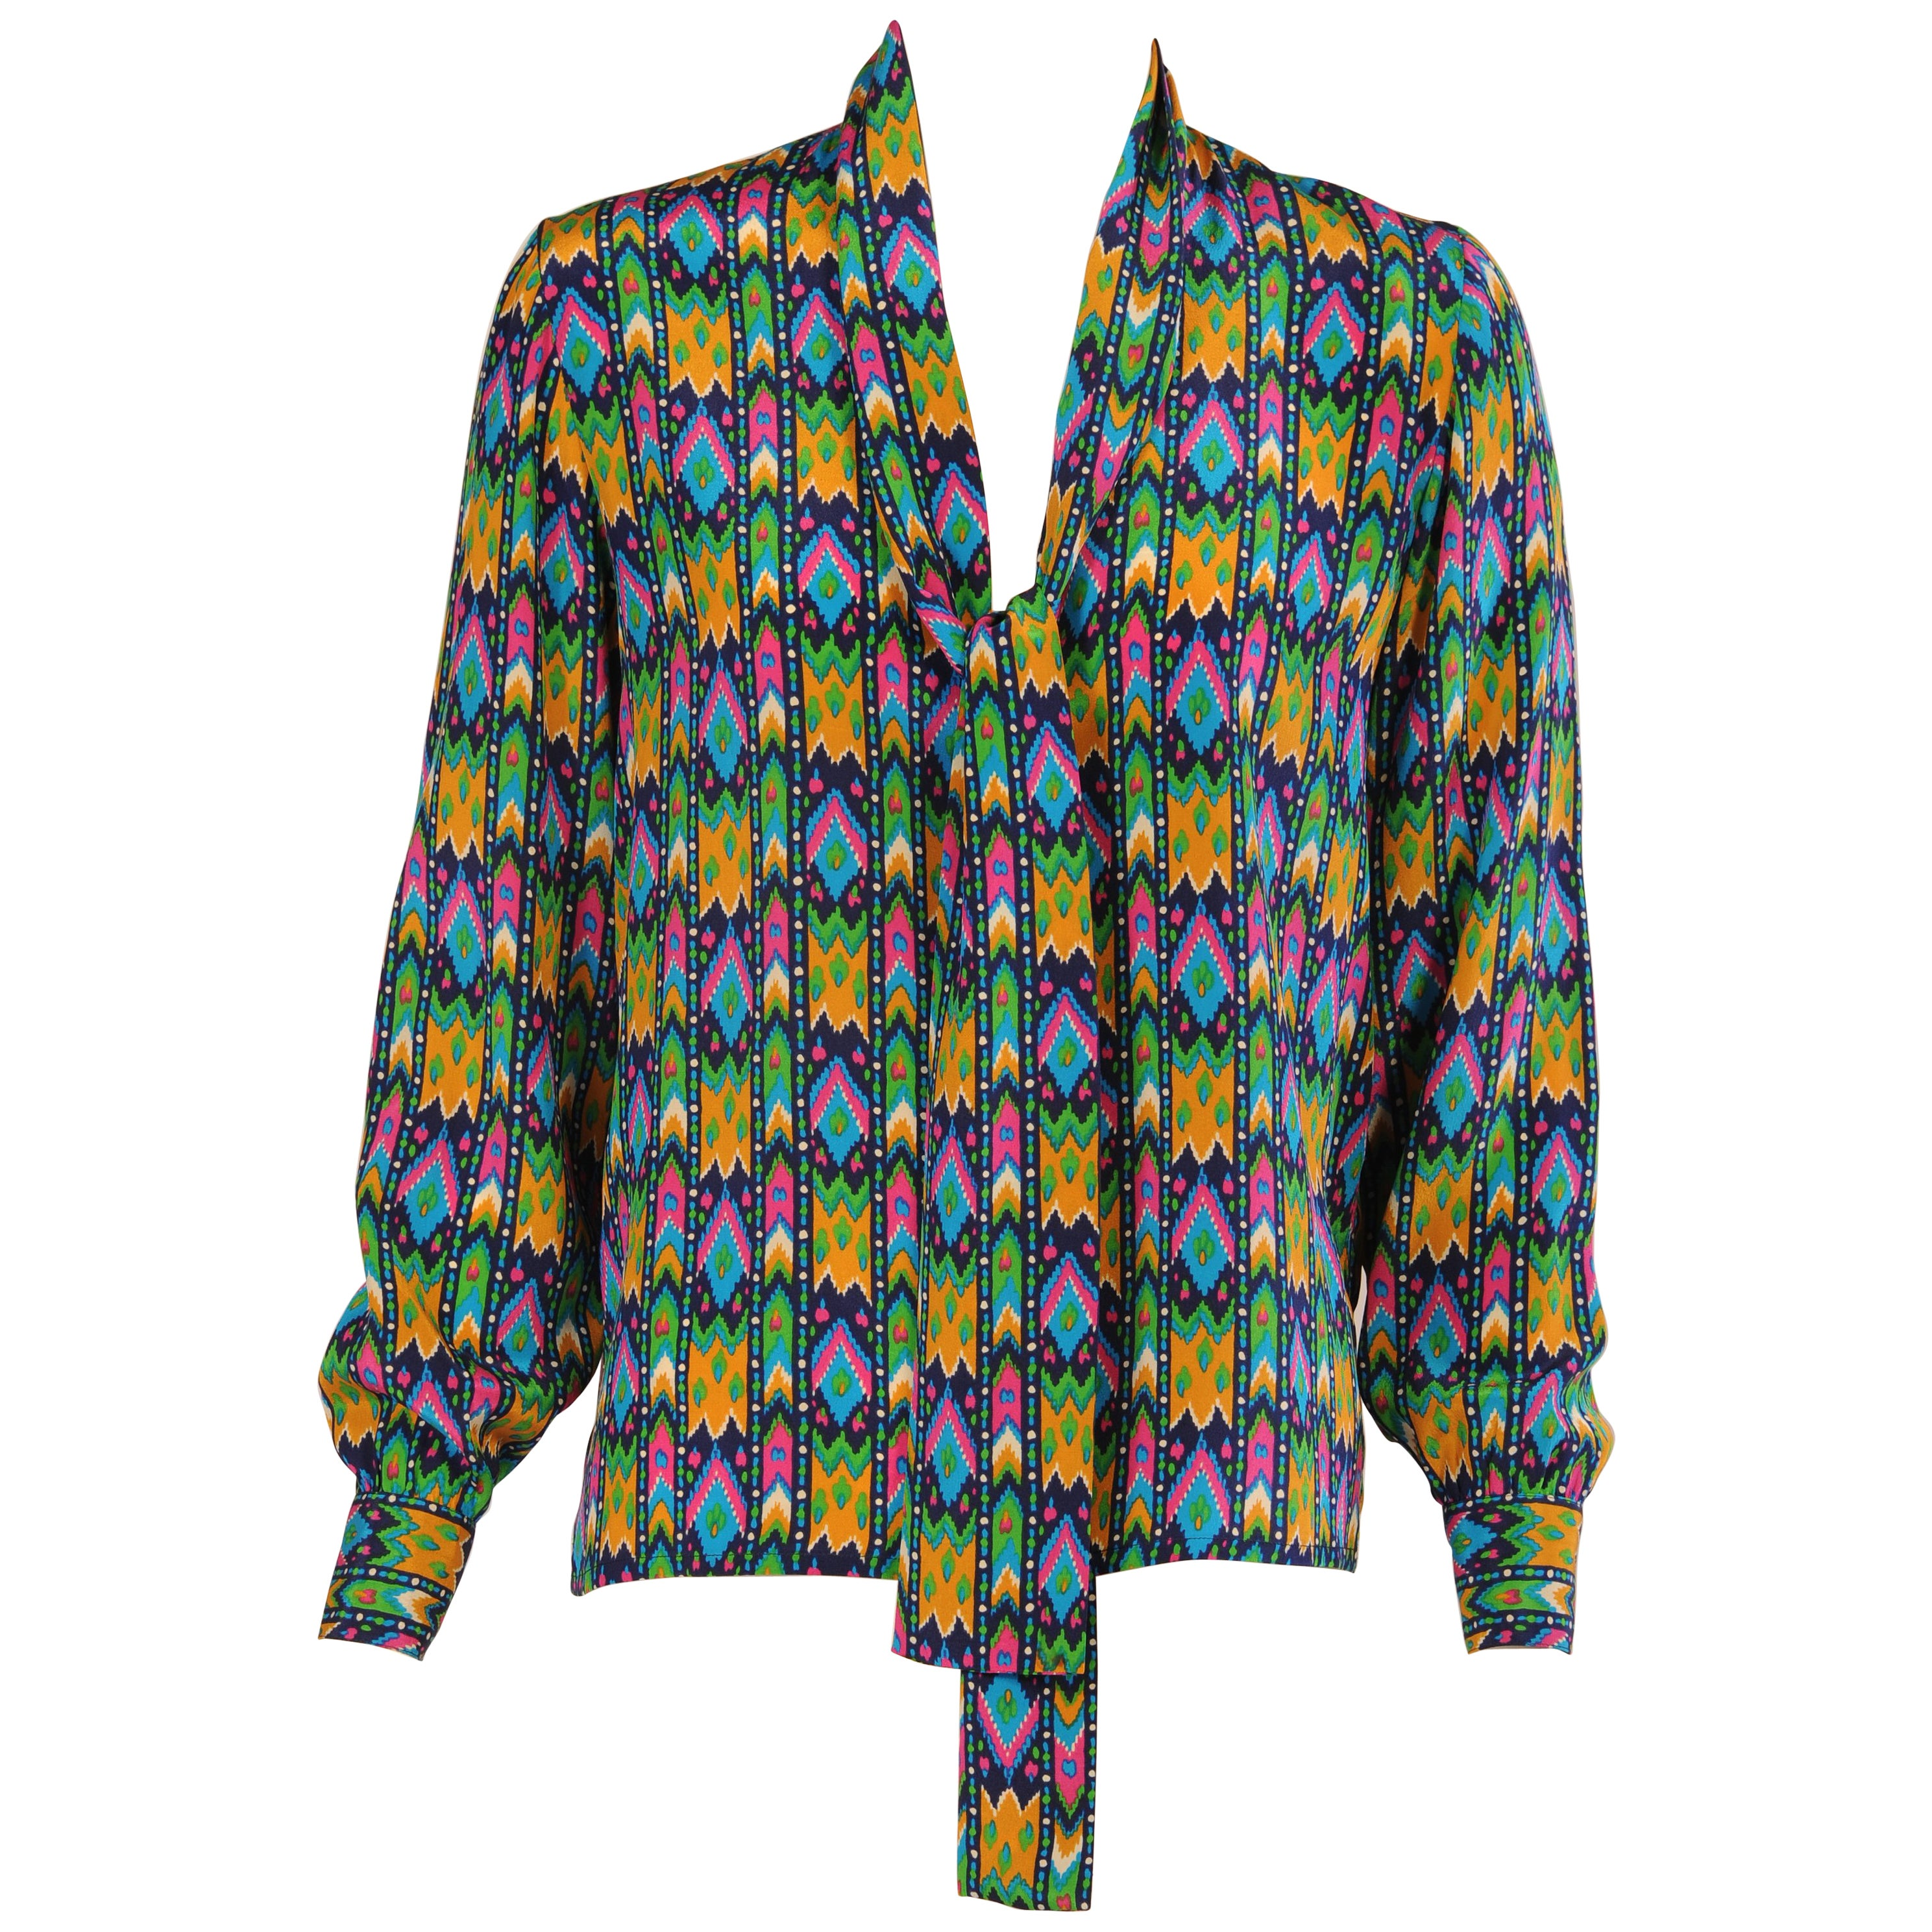 Yves Saint Laurent Colorful Silk Print Tunic Blouse With Tie Collar